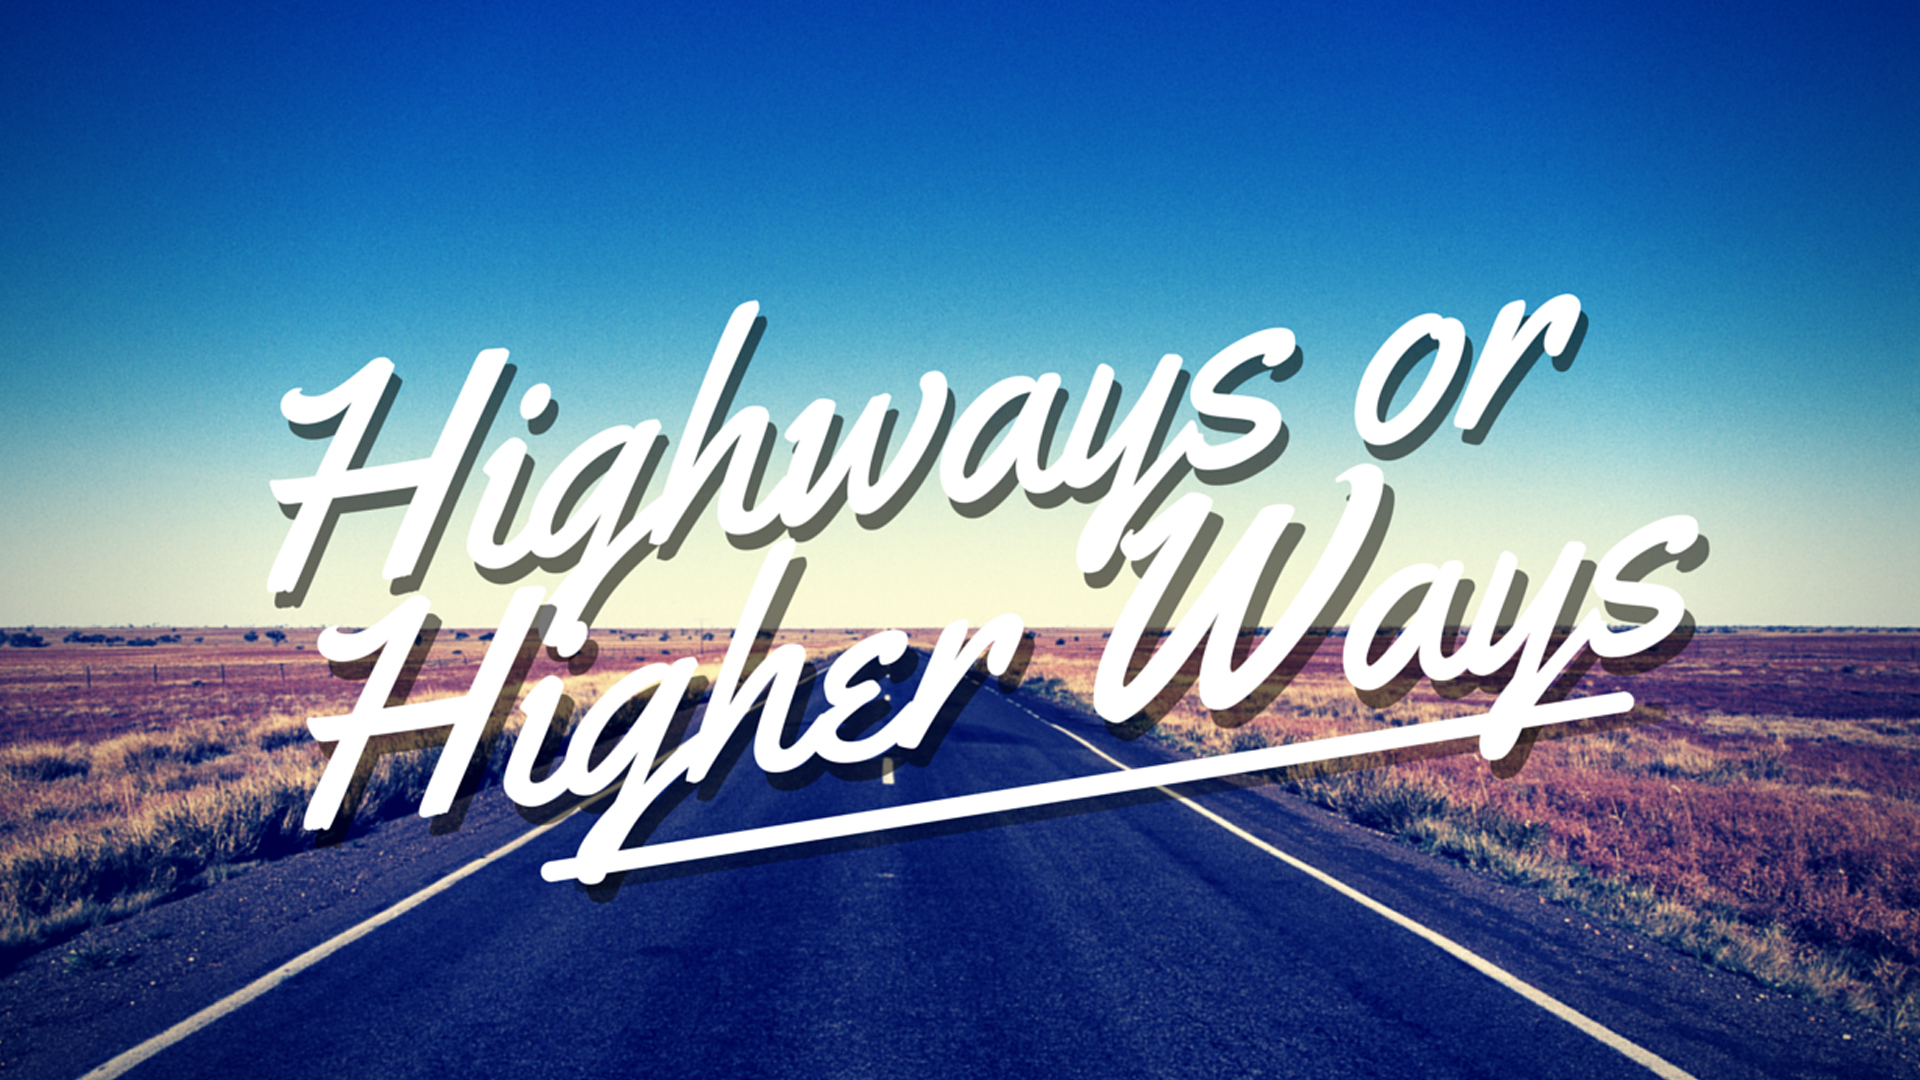 Highways-or-Higherways